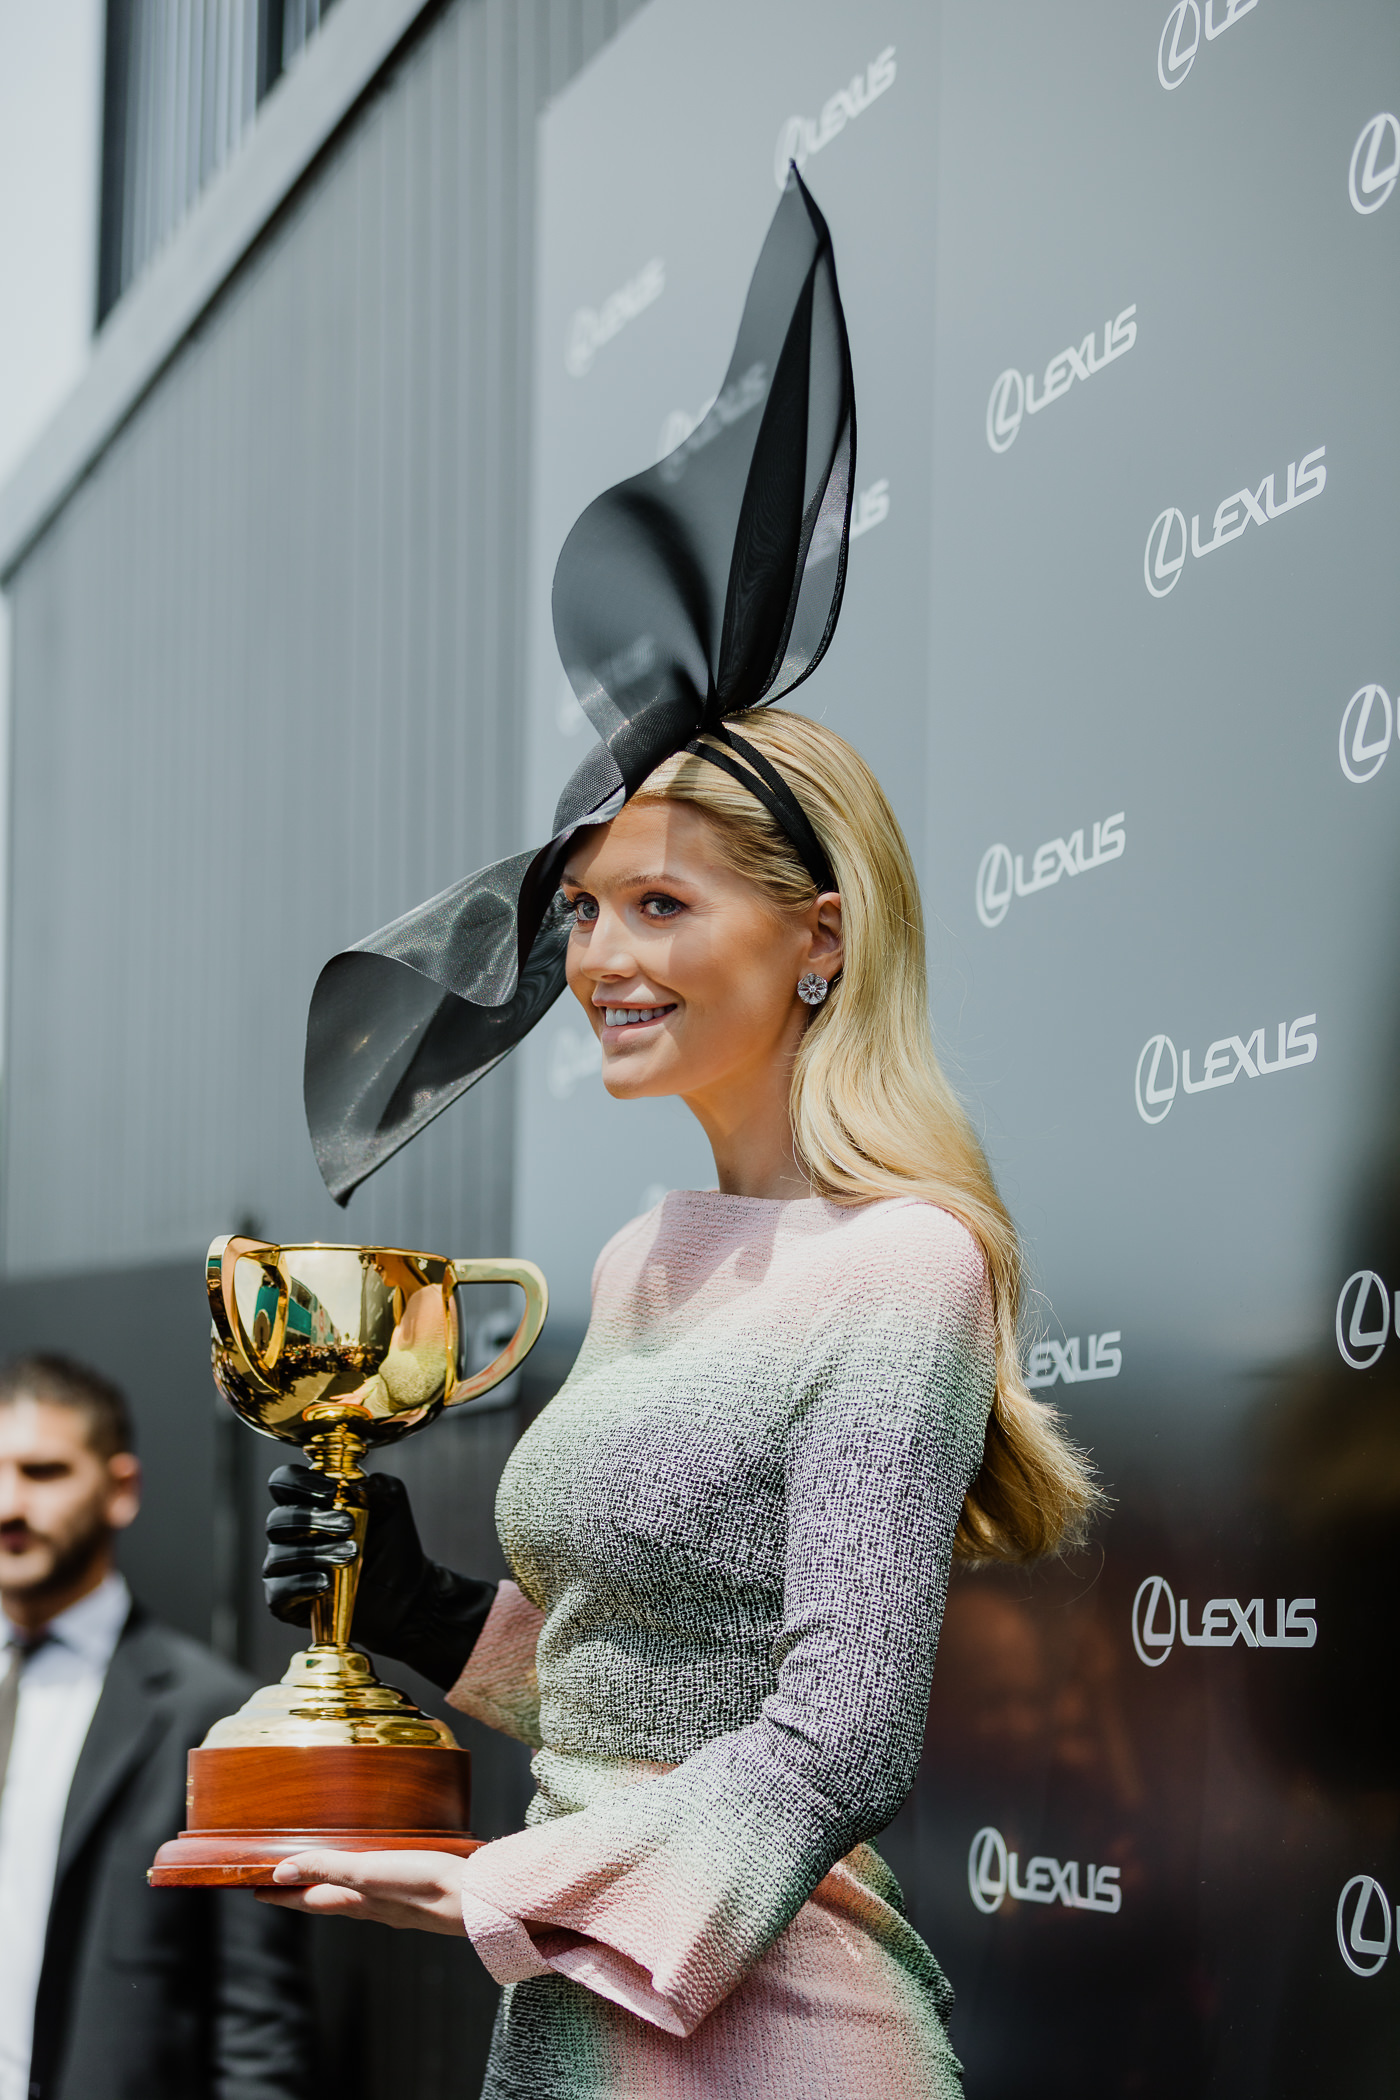 Presenting the Melbourne Cup at the Lexus Marquee in the Birdcage - Kitty Spencer